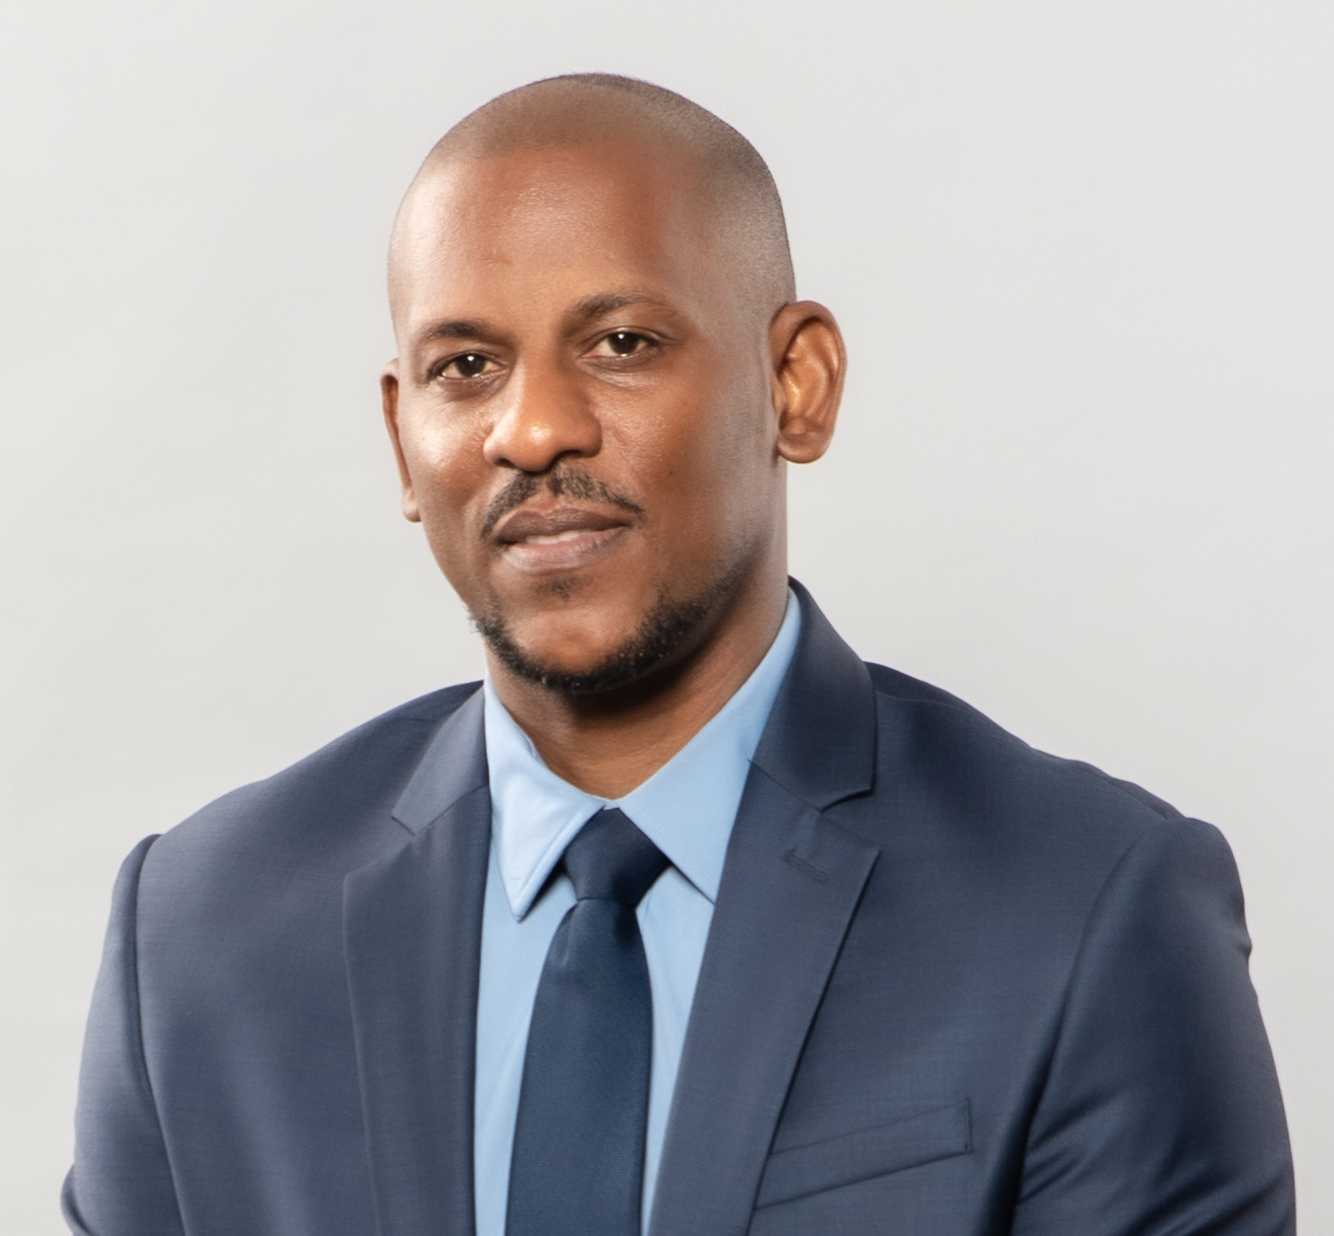 Mr. Steve Farier, General Manager, TDC Financial Services Company Limited appointed Bankers and Financial Services Association of St. Kitts and Nevis President